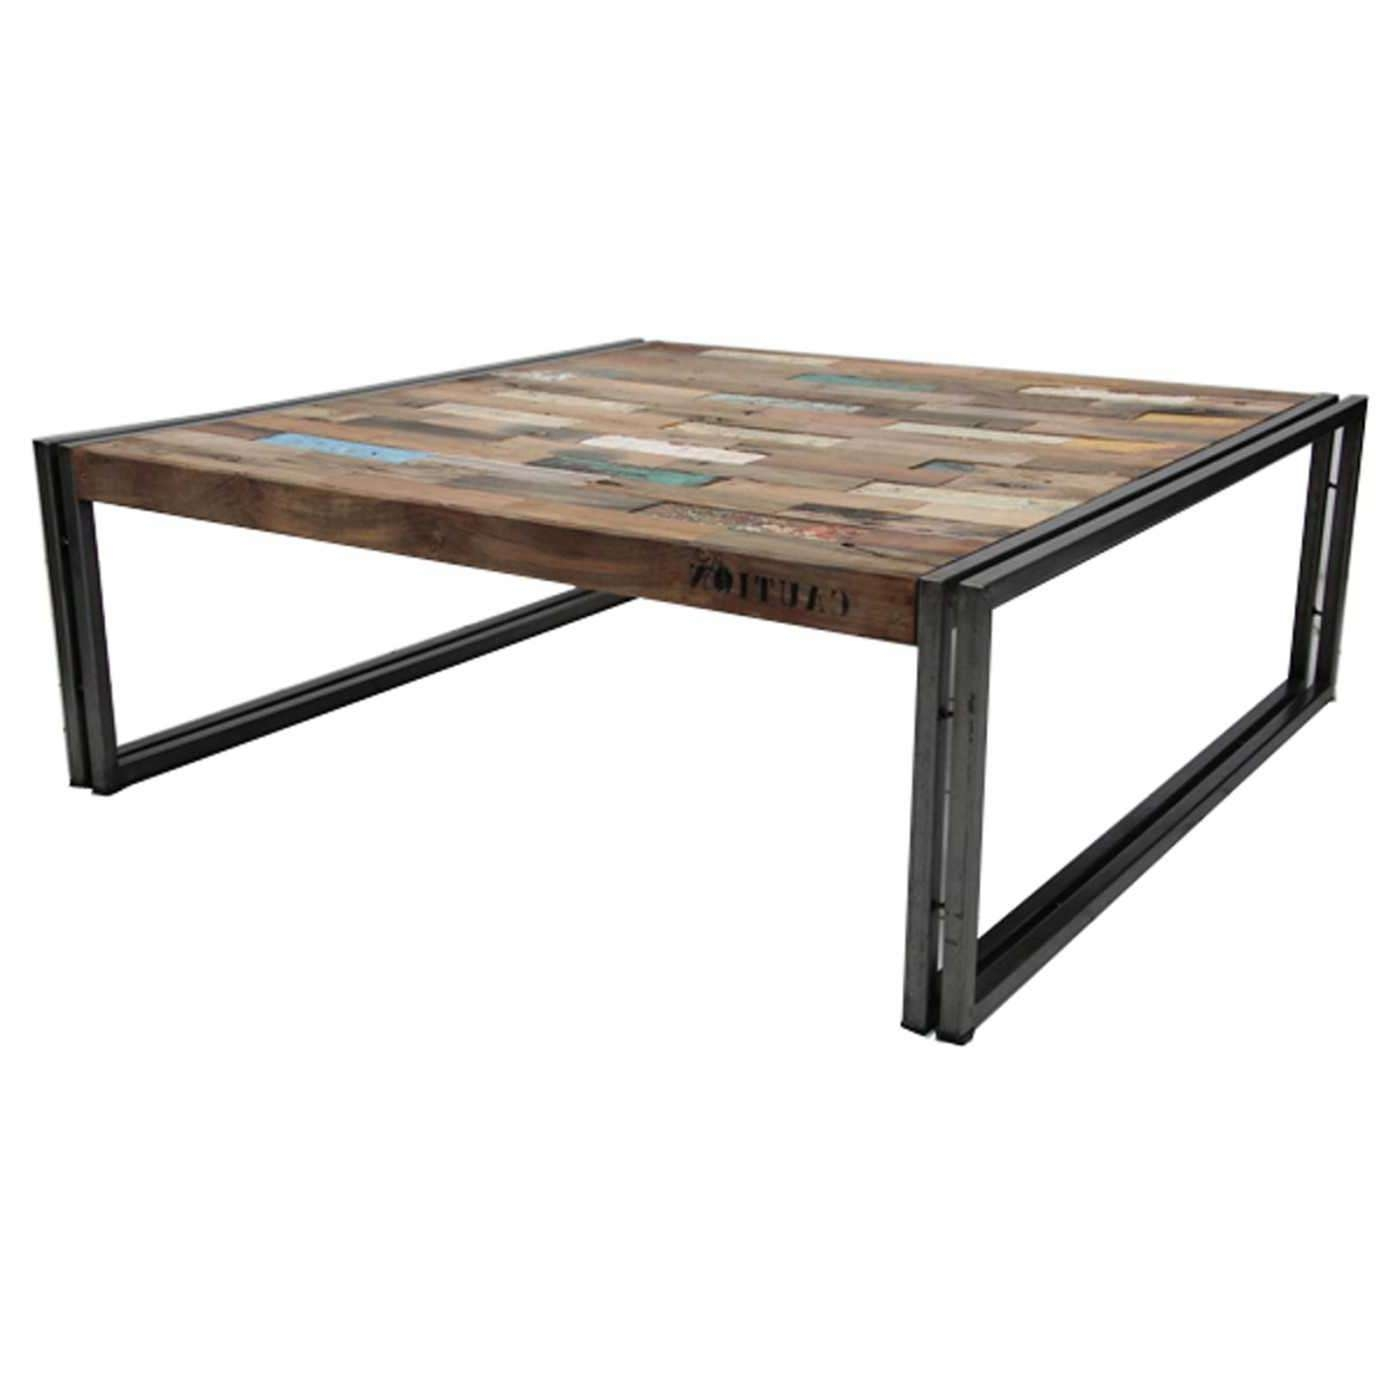 Large Square Coffee Tables (View 13 of 20)